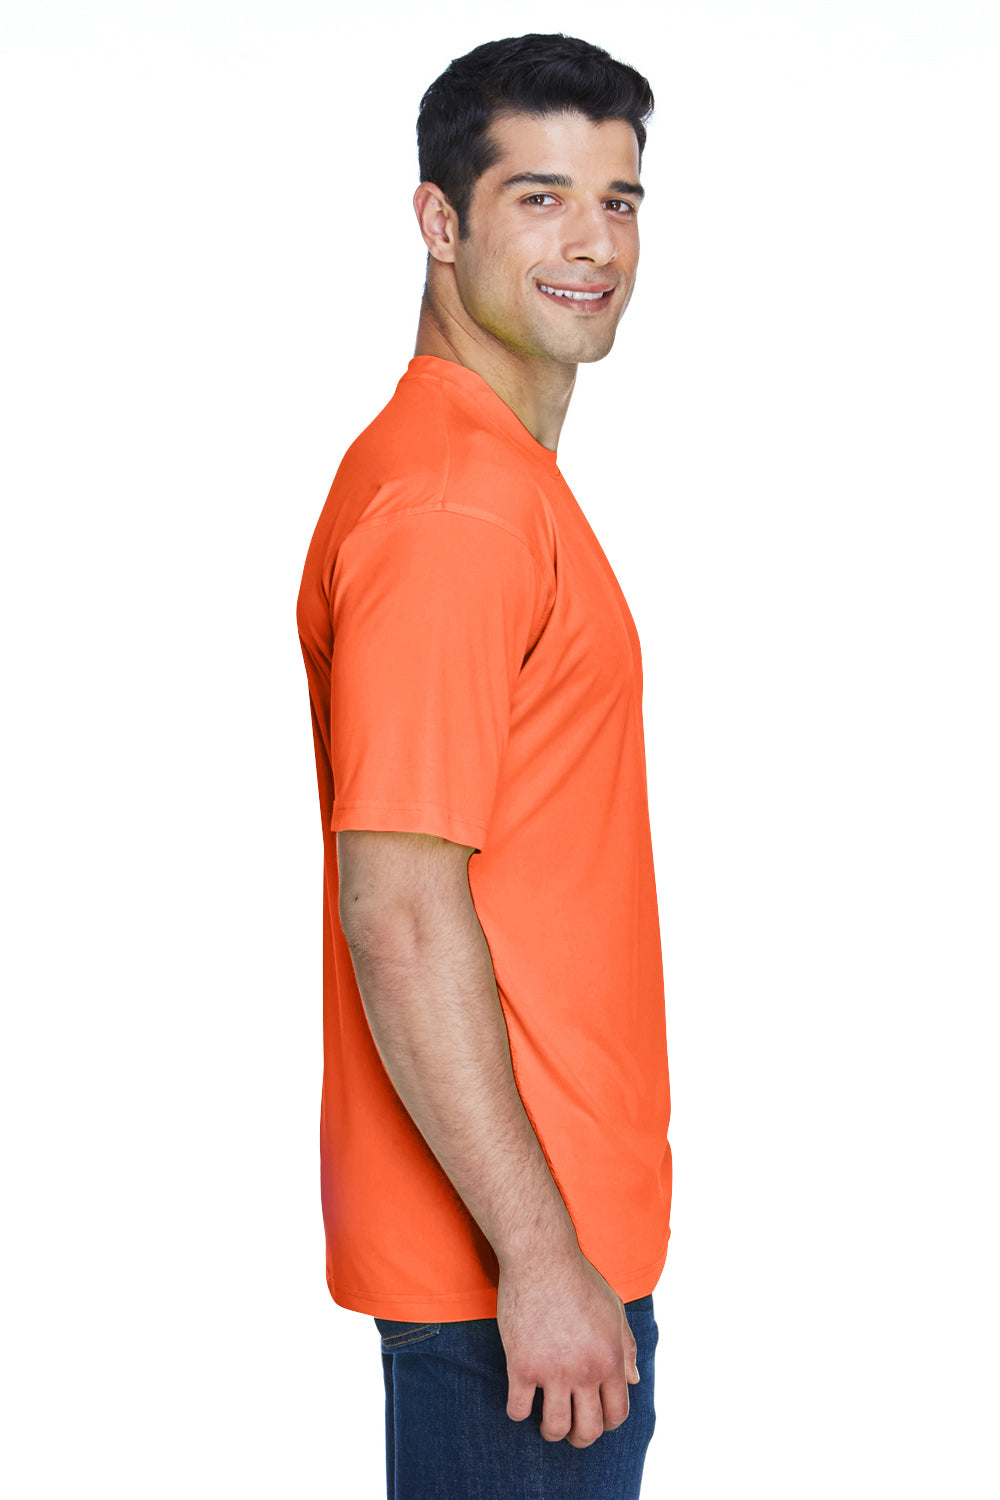 UltraClub 8420 Mens Cool & Dry Performance Moisture Wicking Short Sleeve Crewneck T-Shirt Bright Orange Side